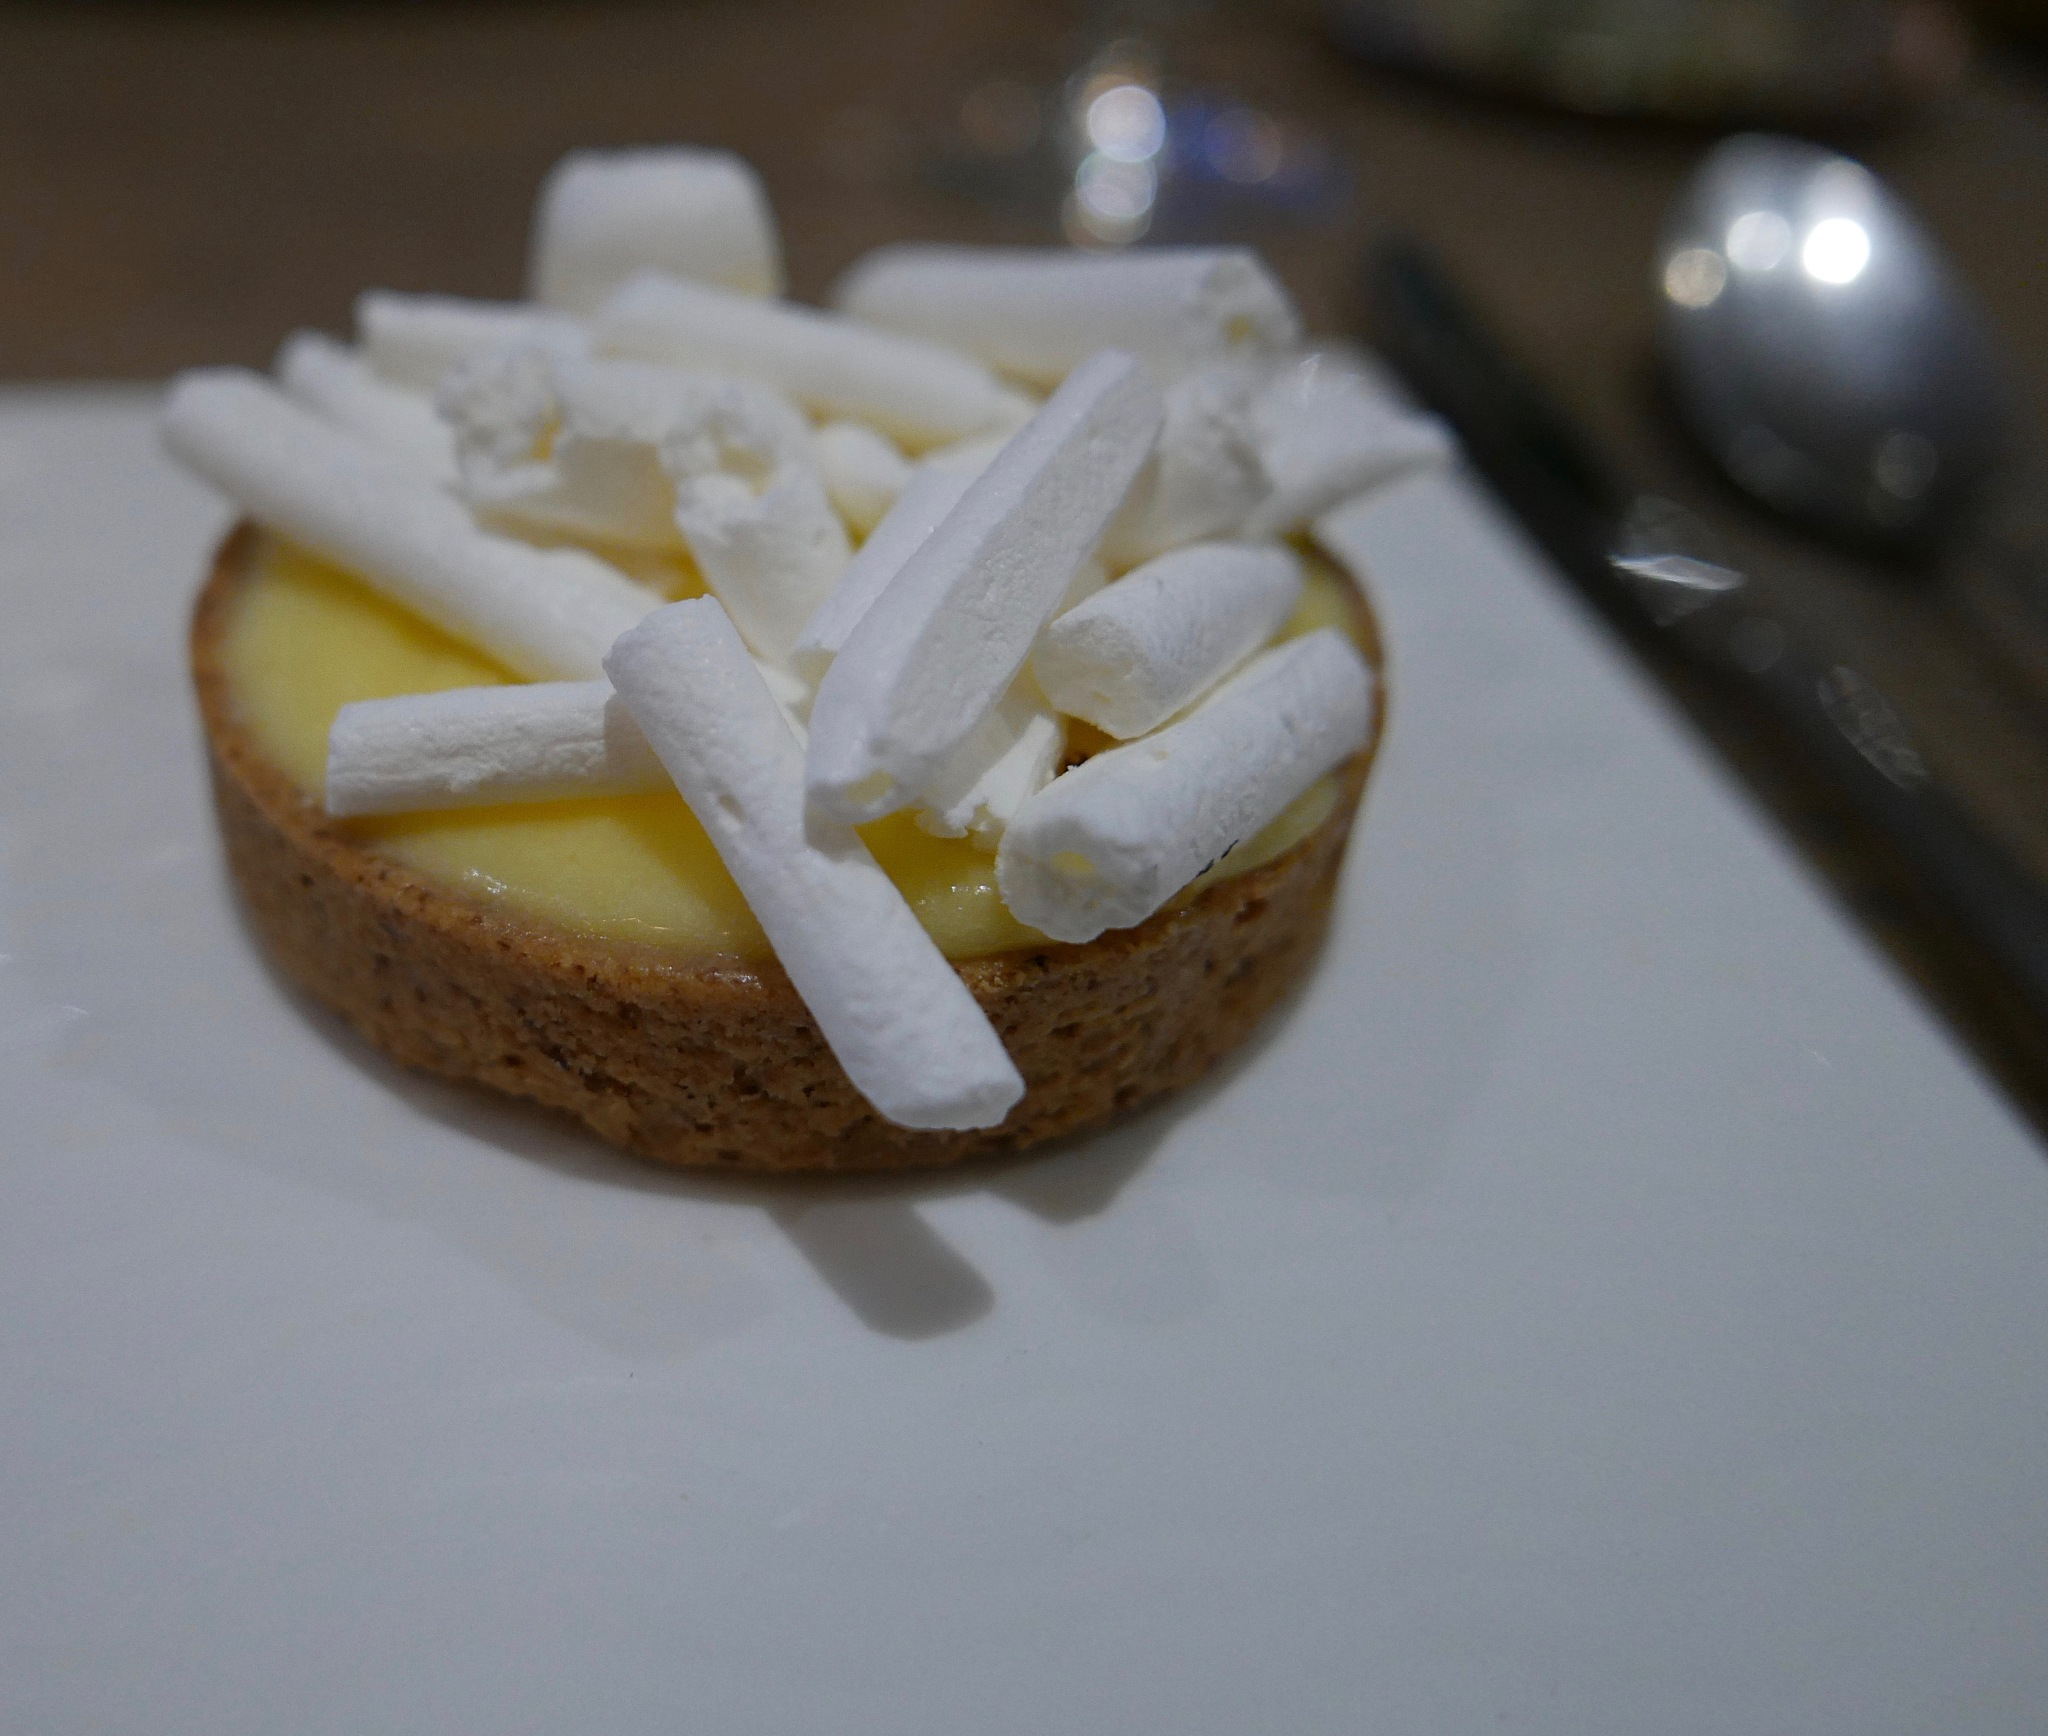 Lemon pie by lallemand